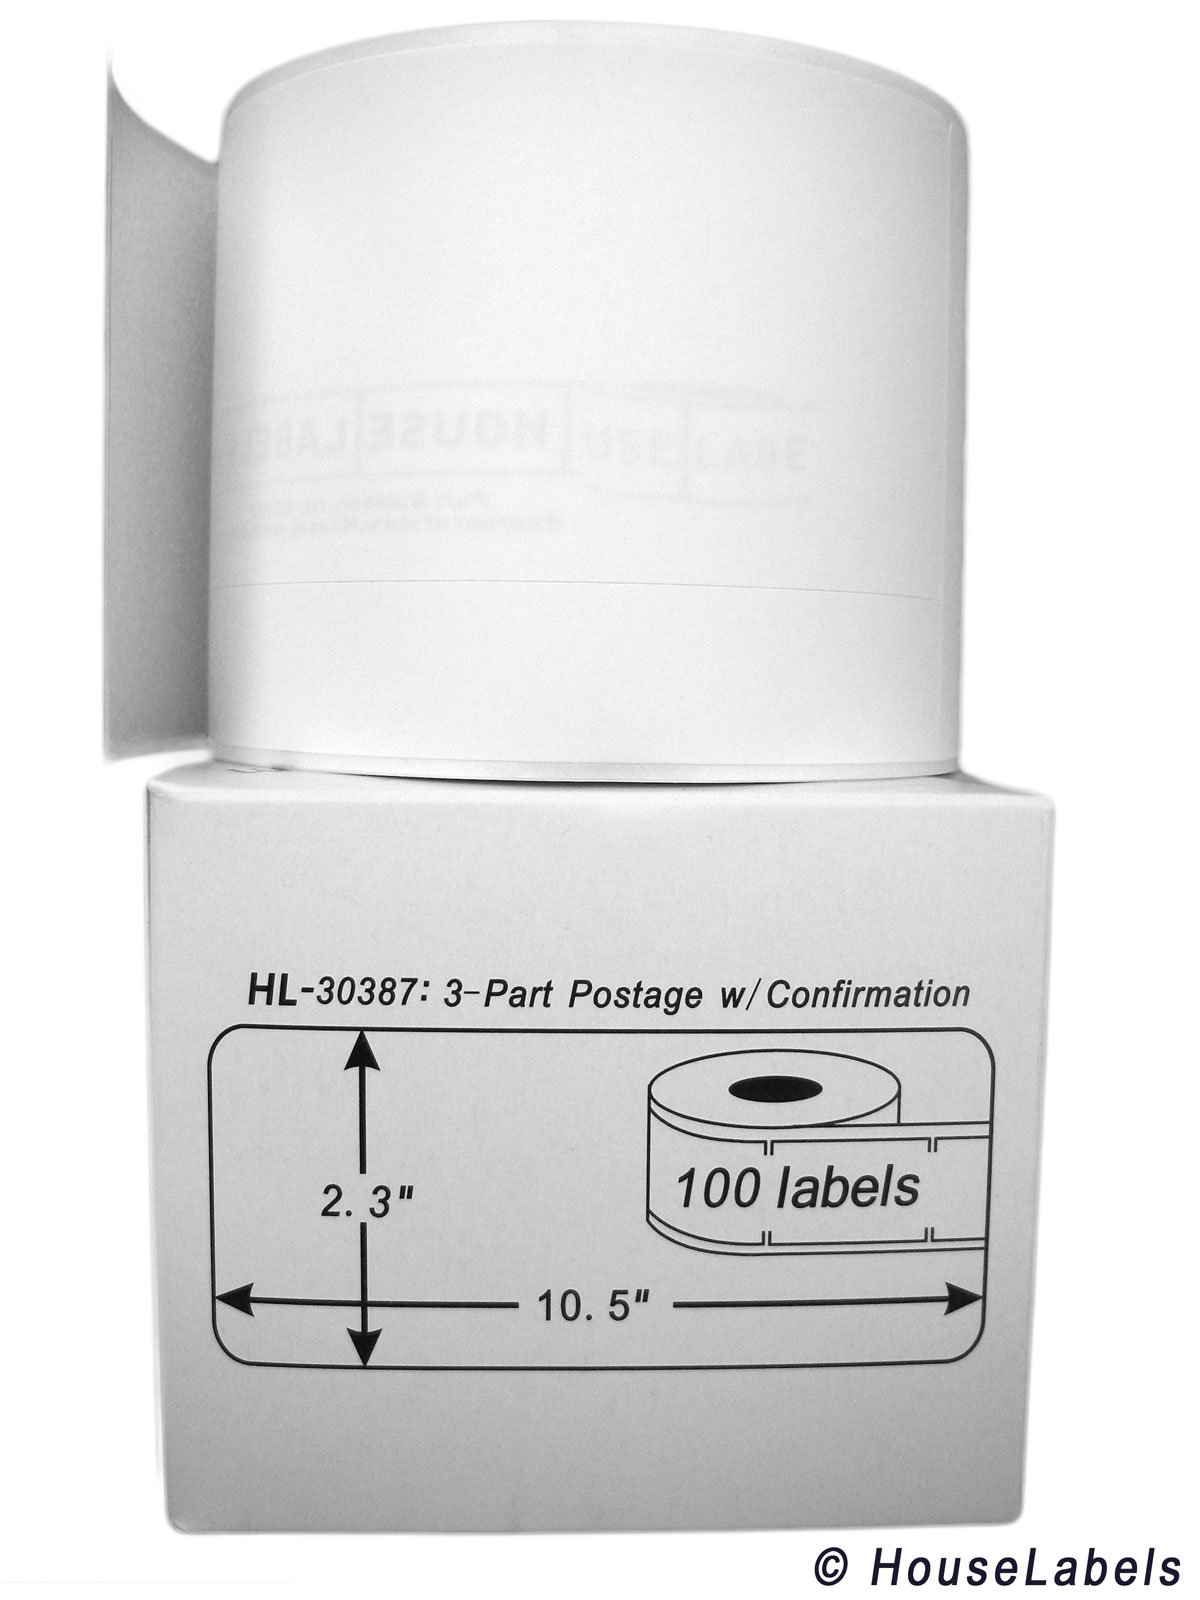 12 Rolls; 100 Labels per Roll of DYMO-Compatible 30387 3-Part Internet Postage Labels (2-5/16'' x 10-1/2'') -- BPA Free!